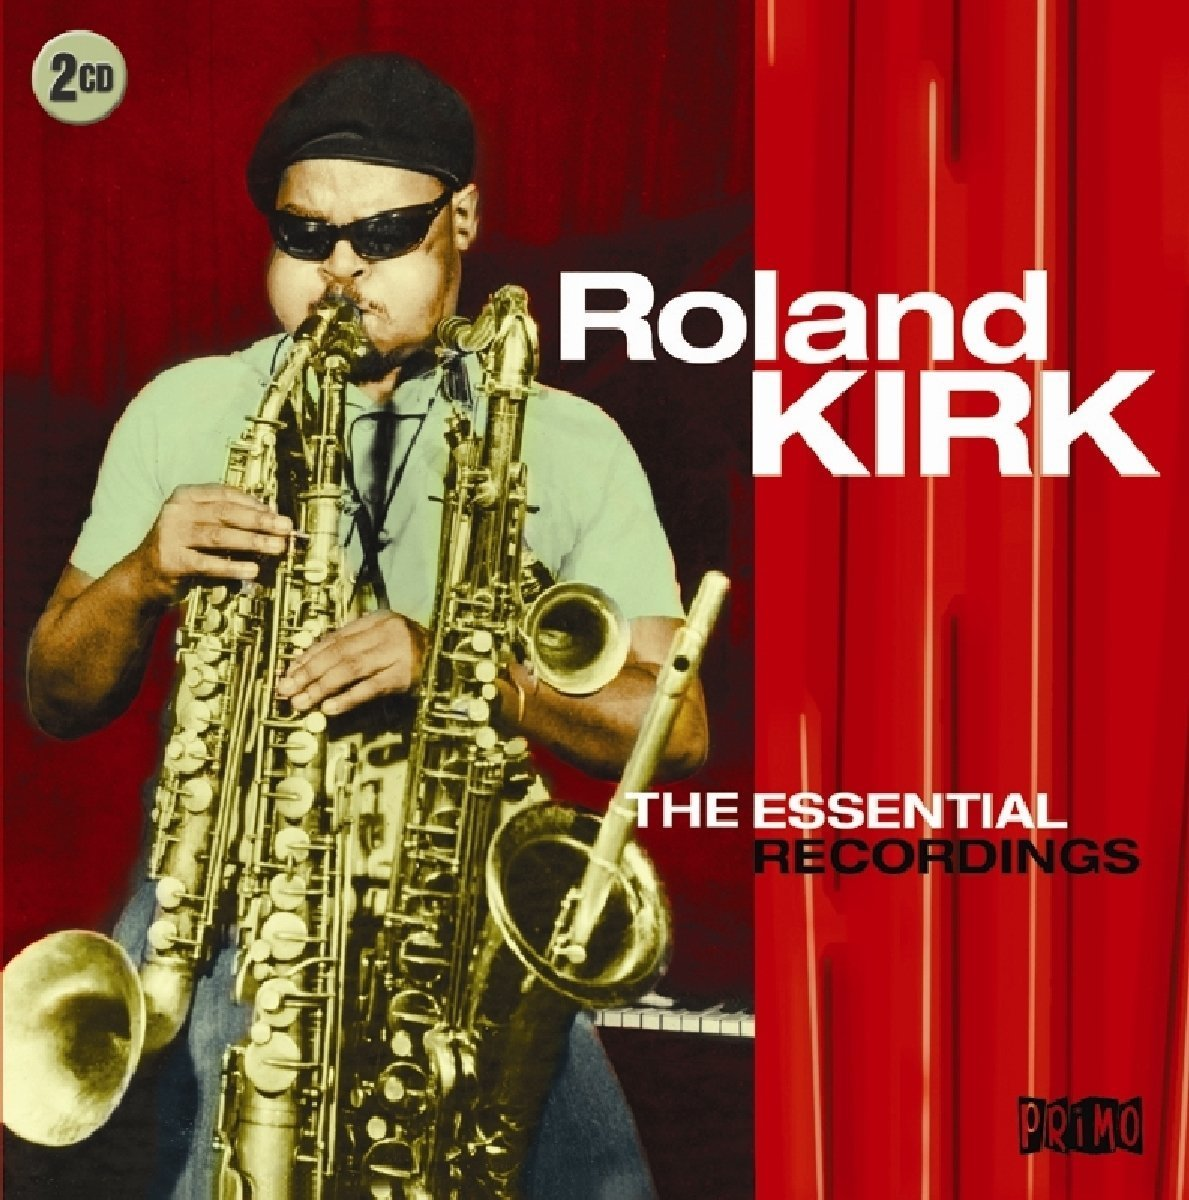 The Essential Recordings by Roland Kirk image